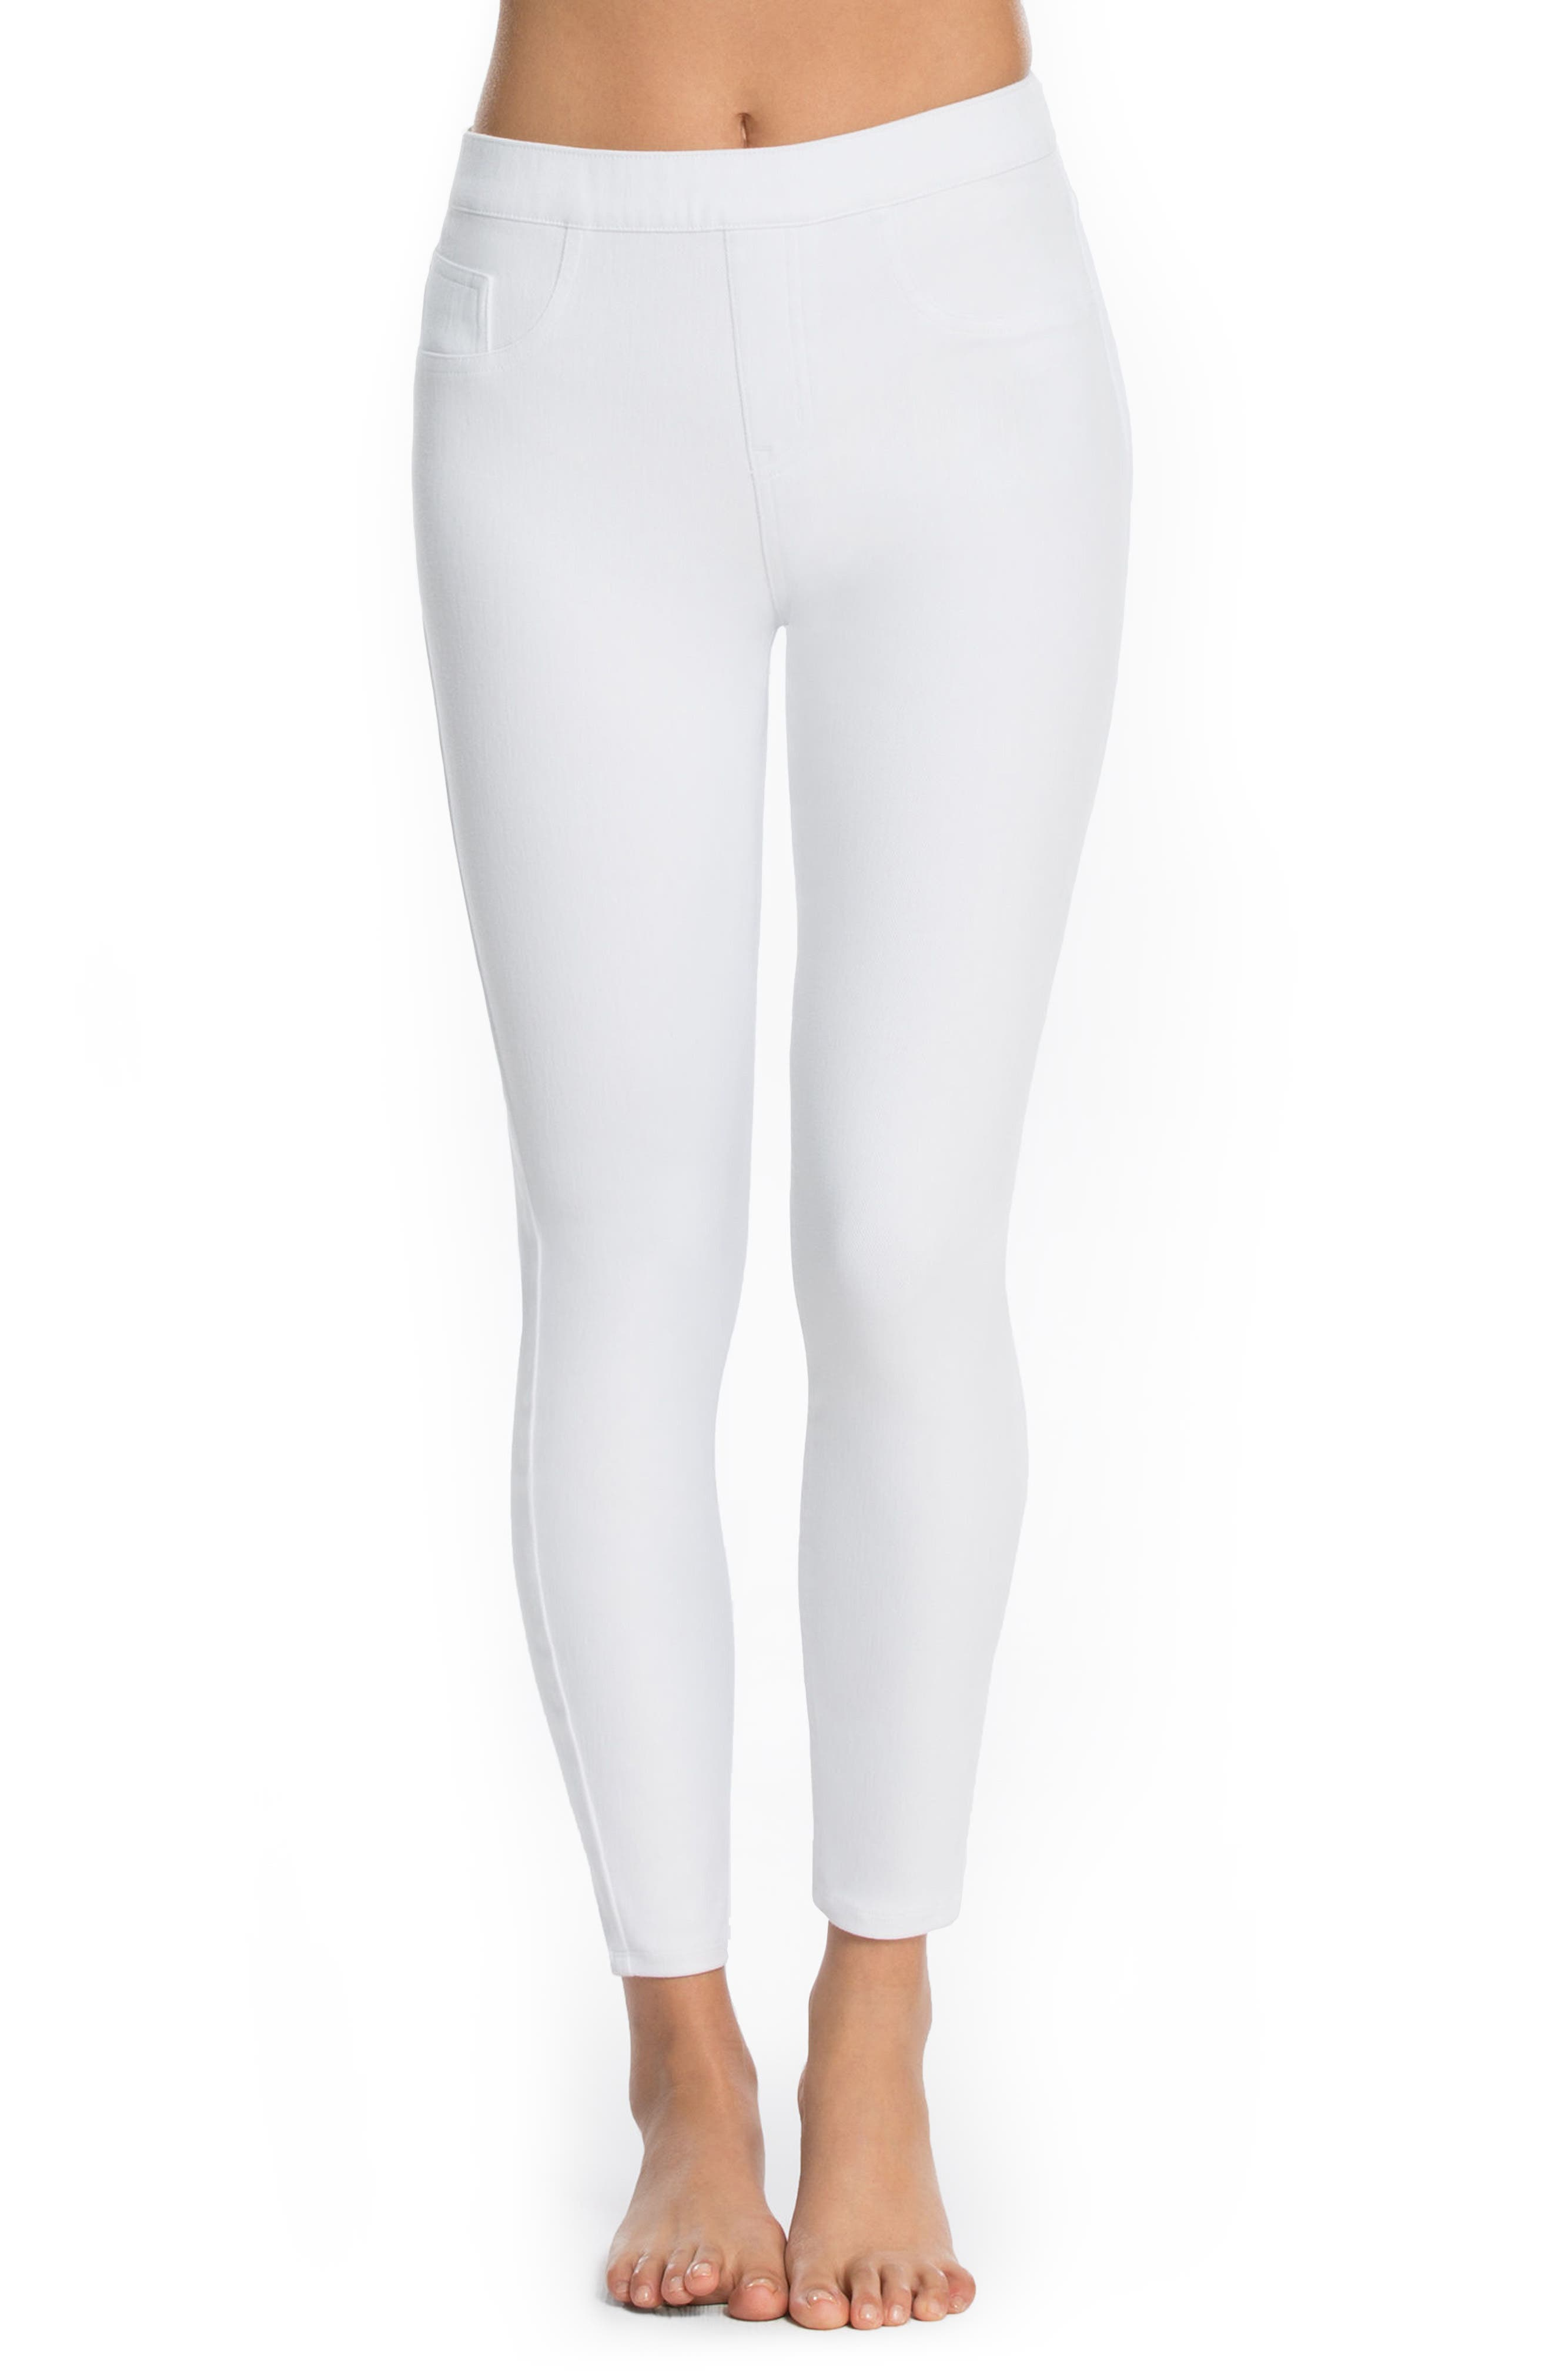 Jean-ish Leggings,                         Main,                         color, White